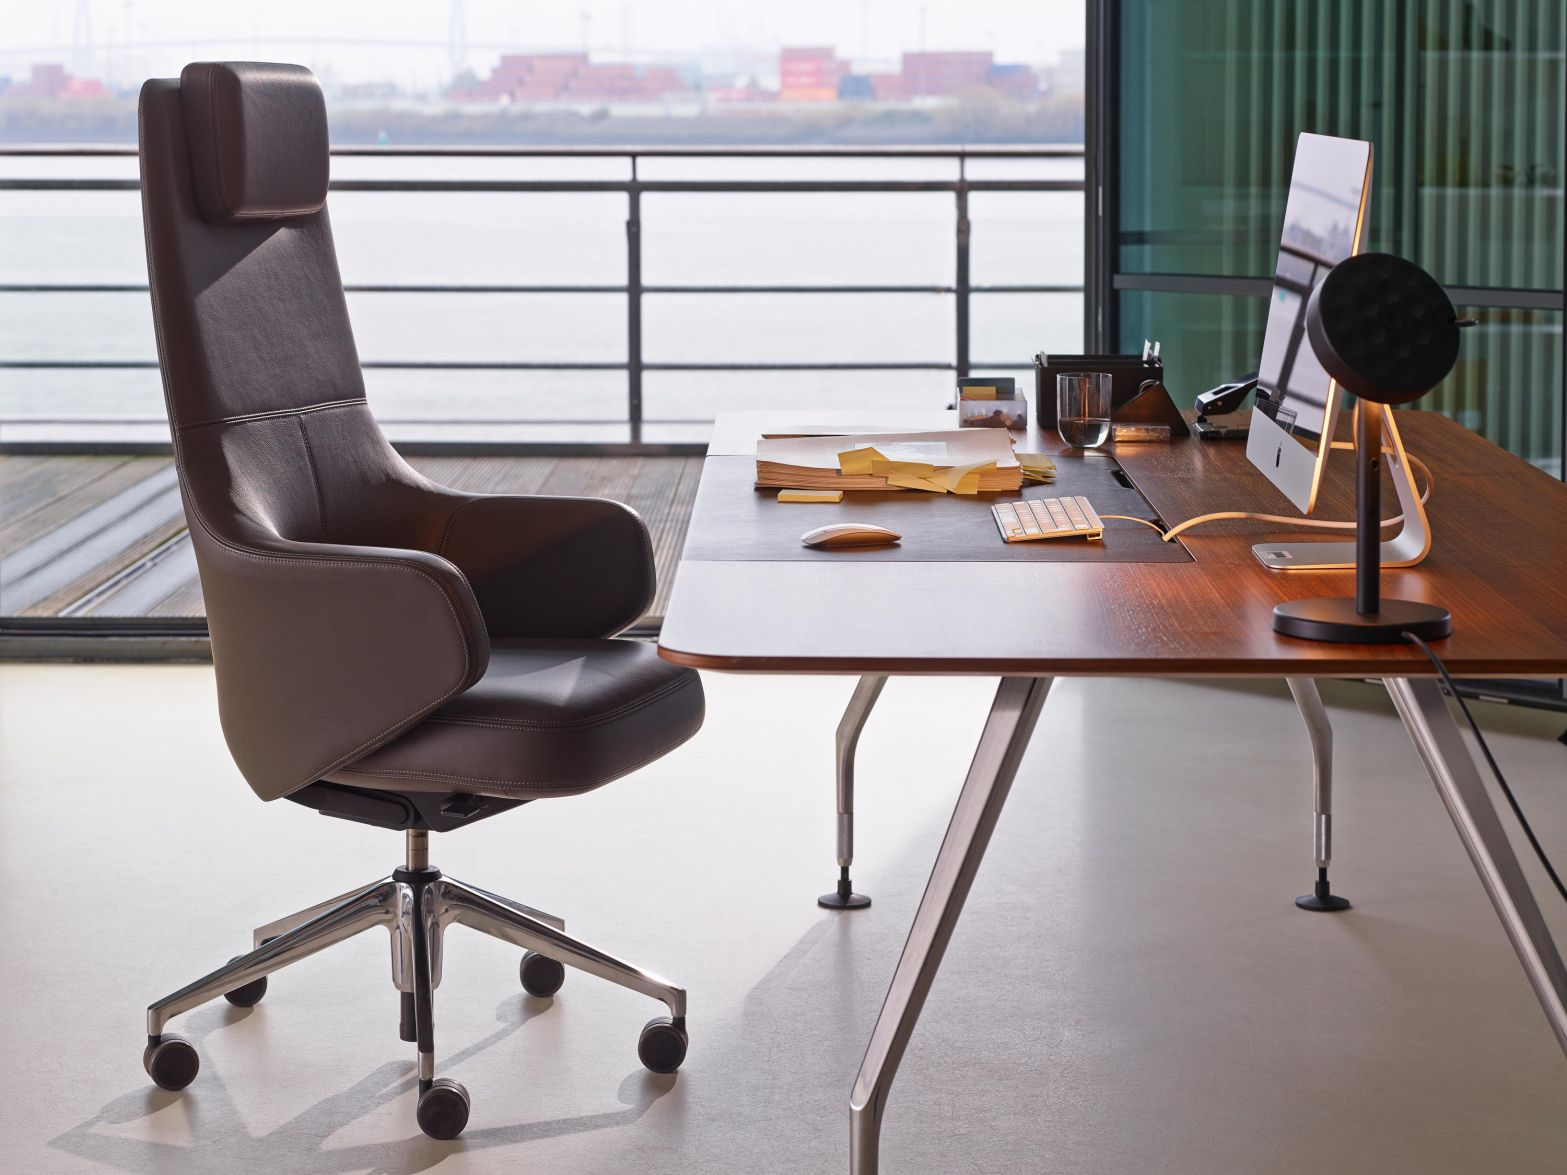 70+ Executive Conference Room Chairs - Home Office Furniture Images ...